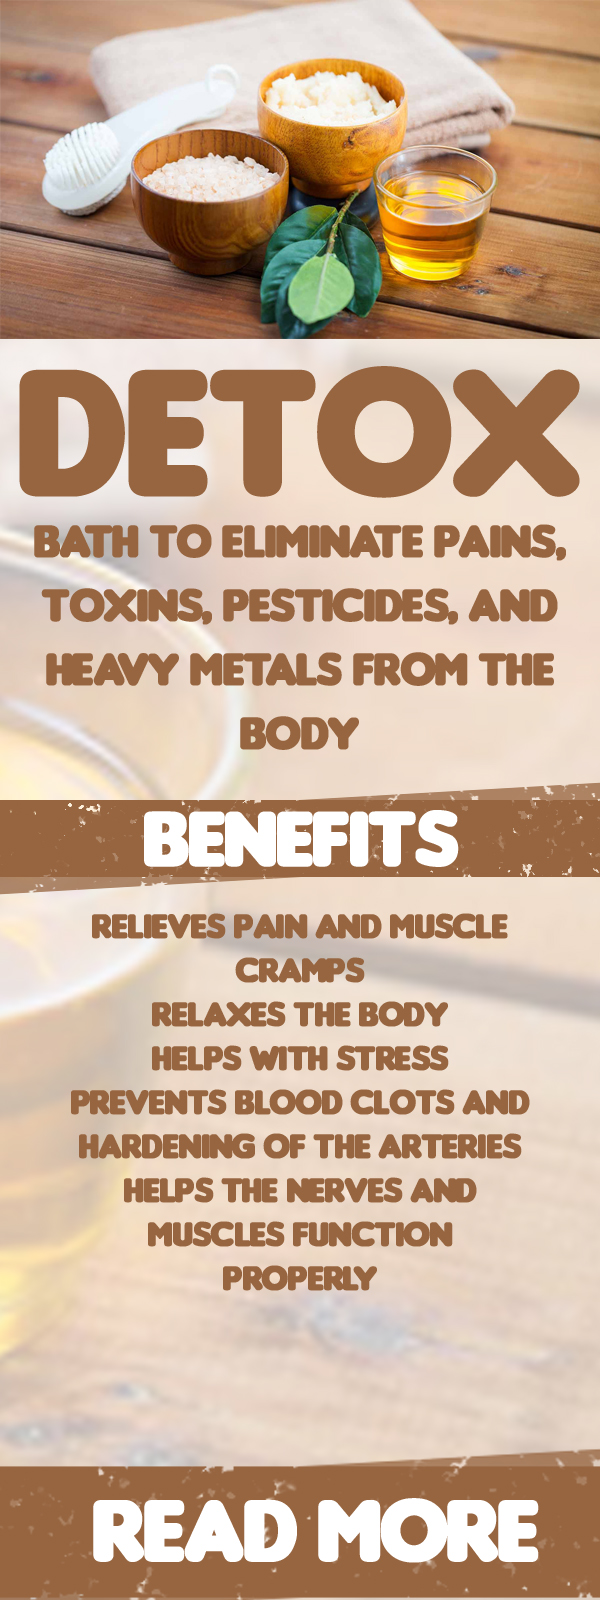 Detox Bath To Eliminate Pains, Toxins, Pesticides, And Heavy